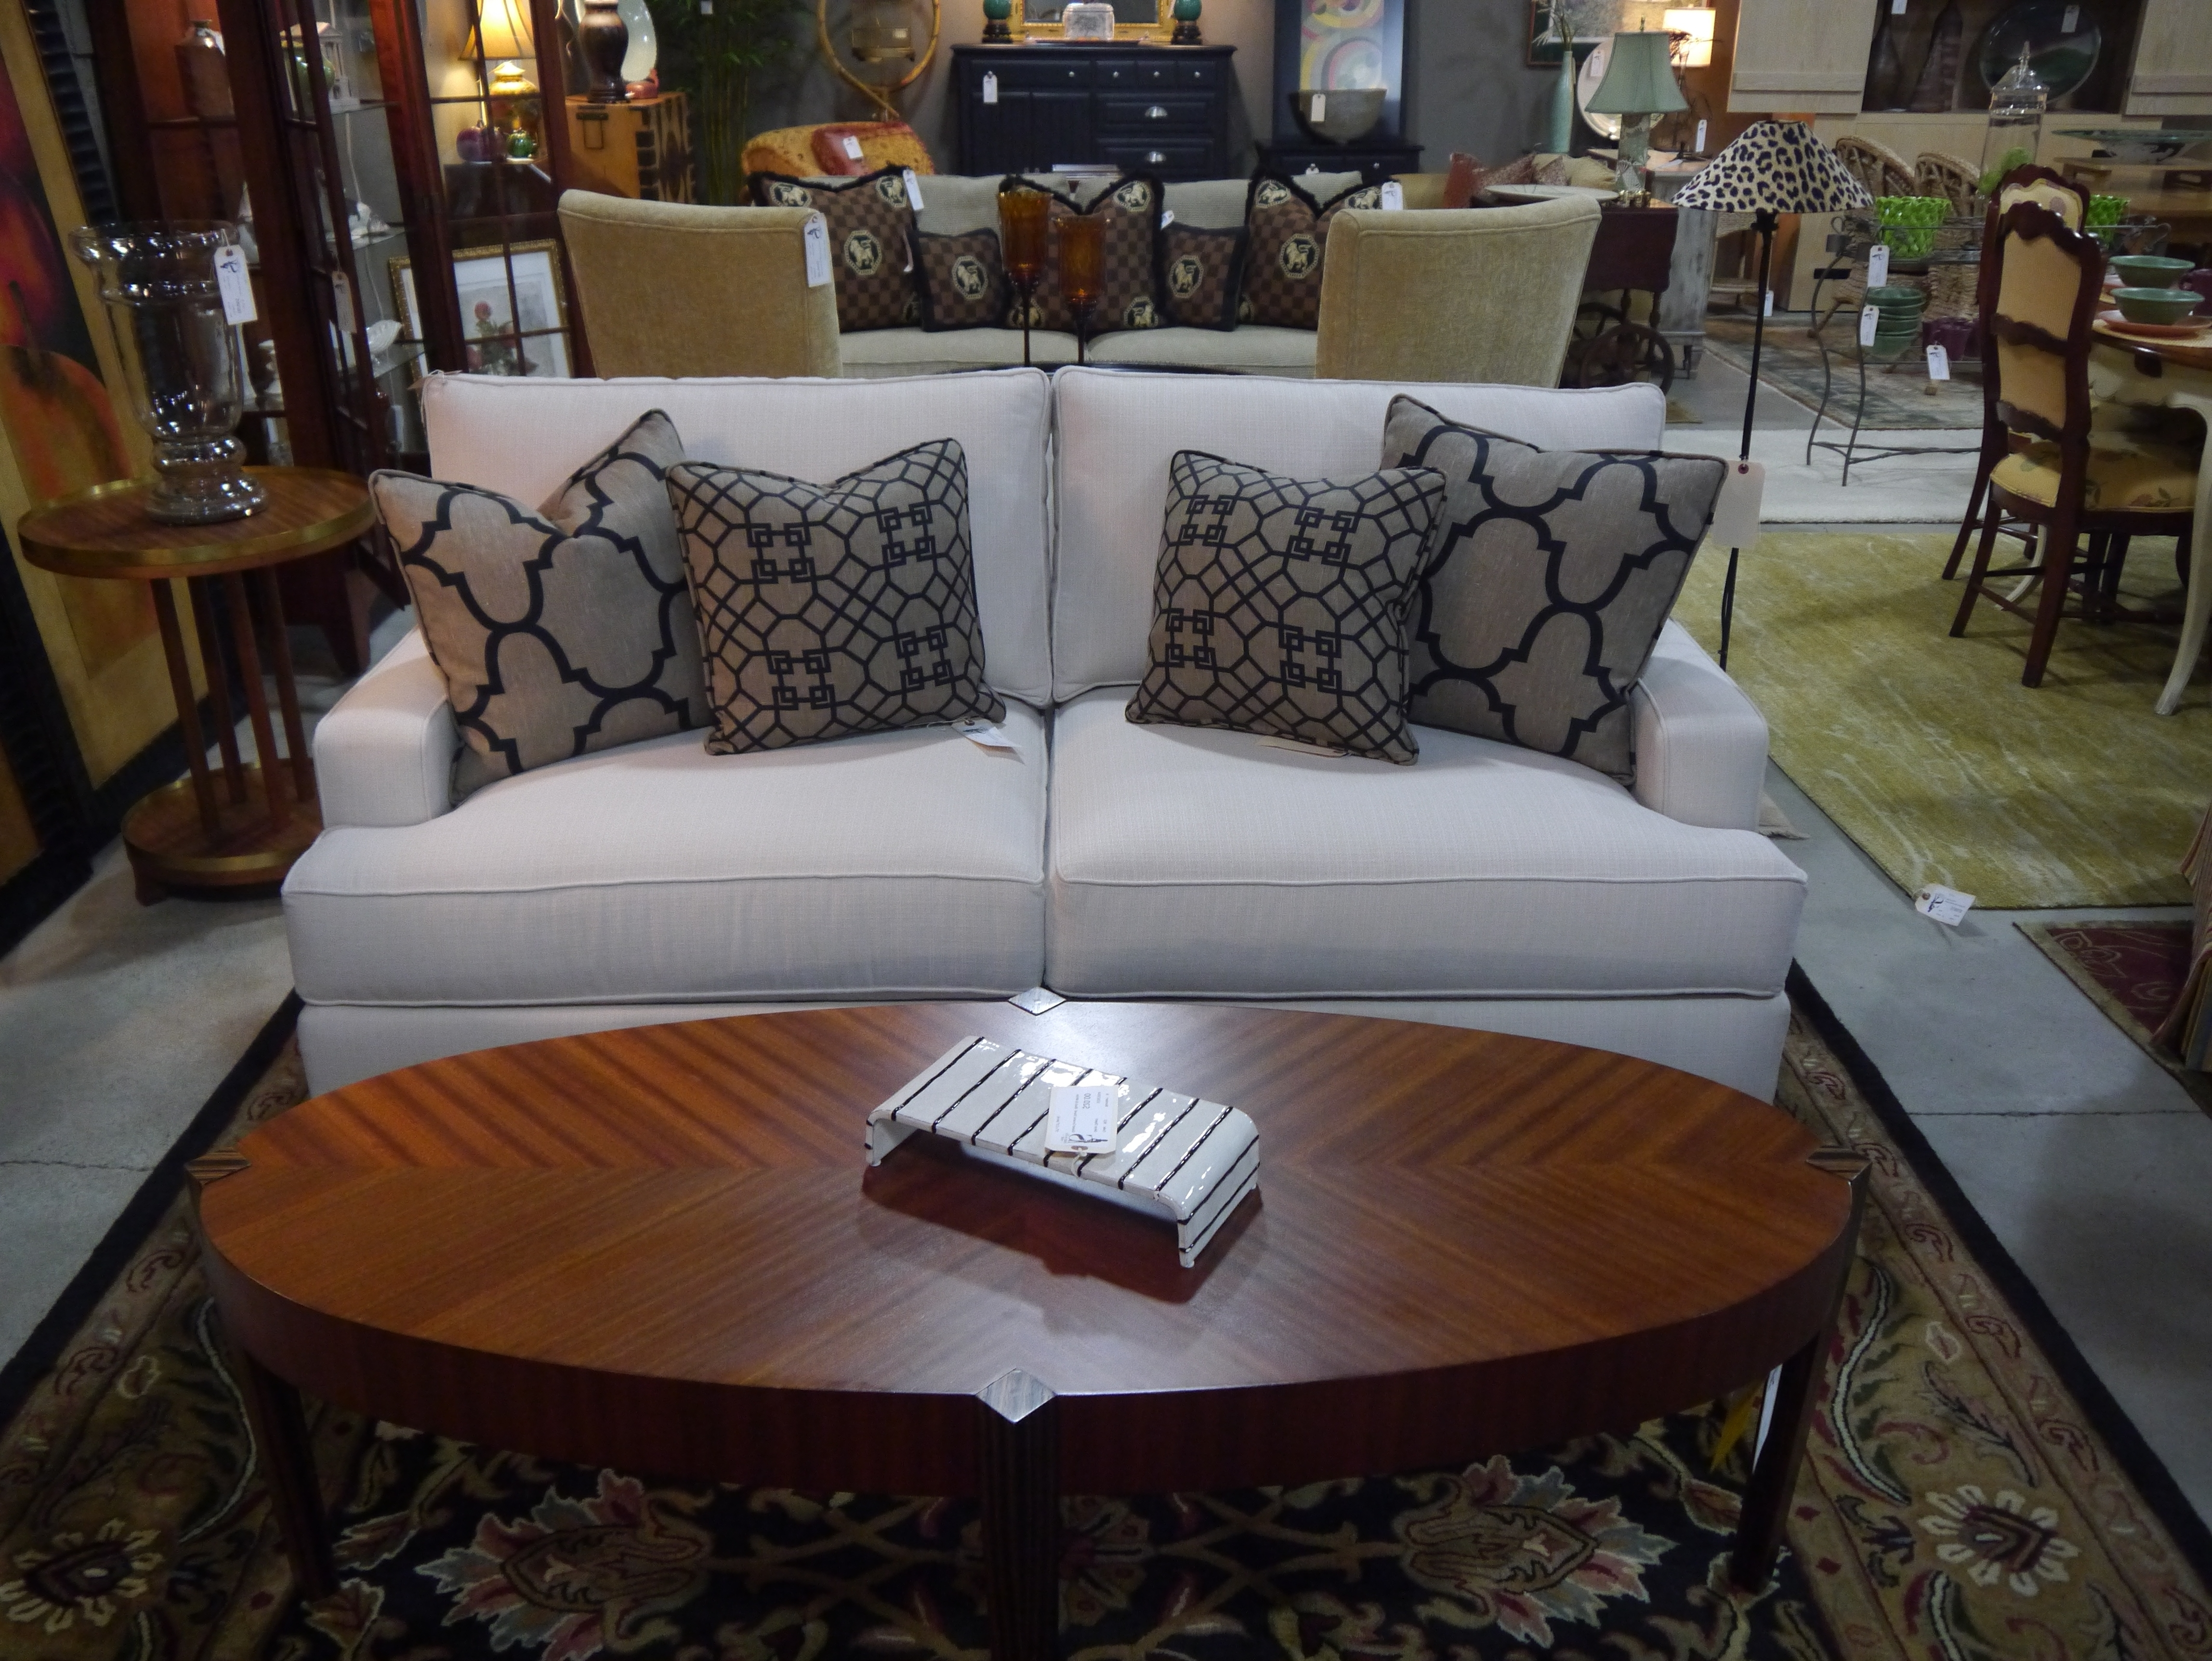 Ethan Allen Sofas And Chairs Throughout Fashionable Furniture: Comfortable Ethan Allen Sectional Sofas For Your Living (View 19 of 20)